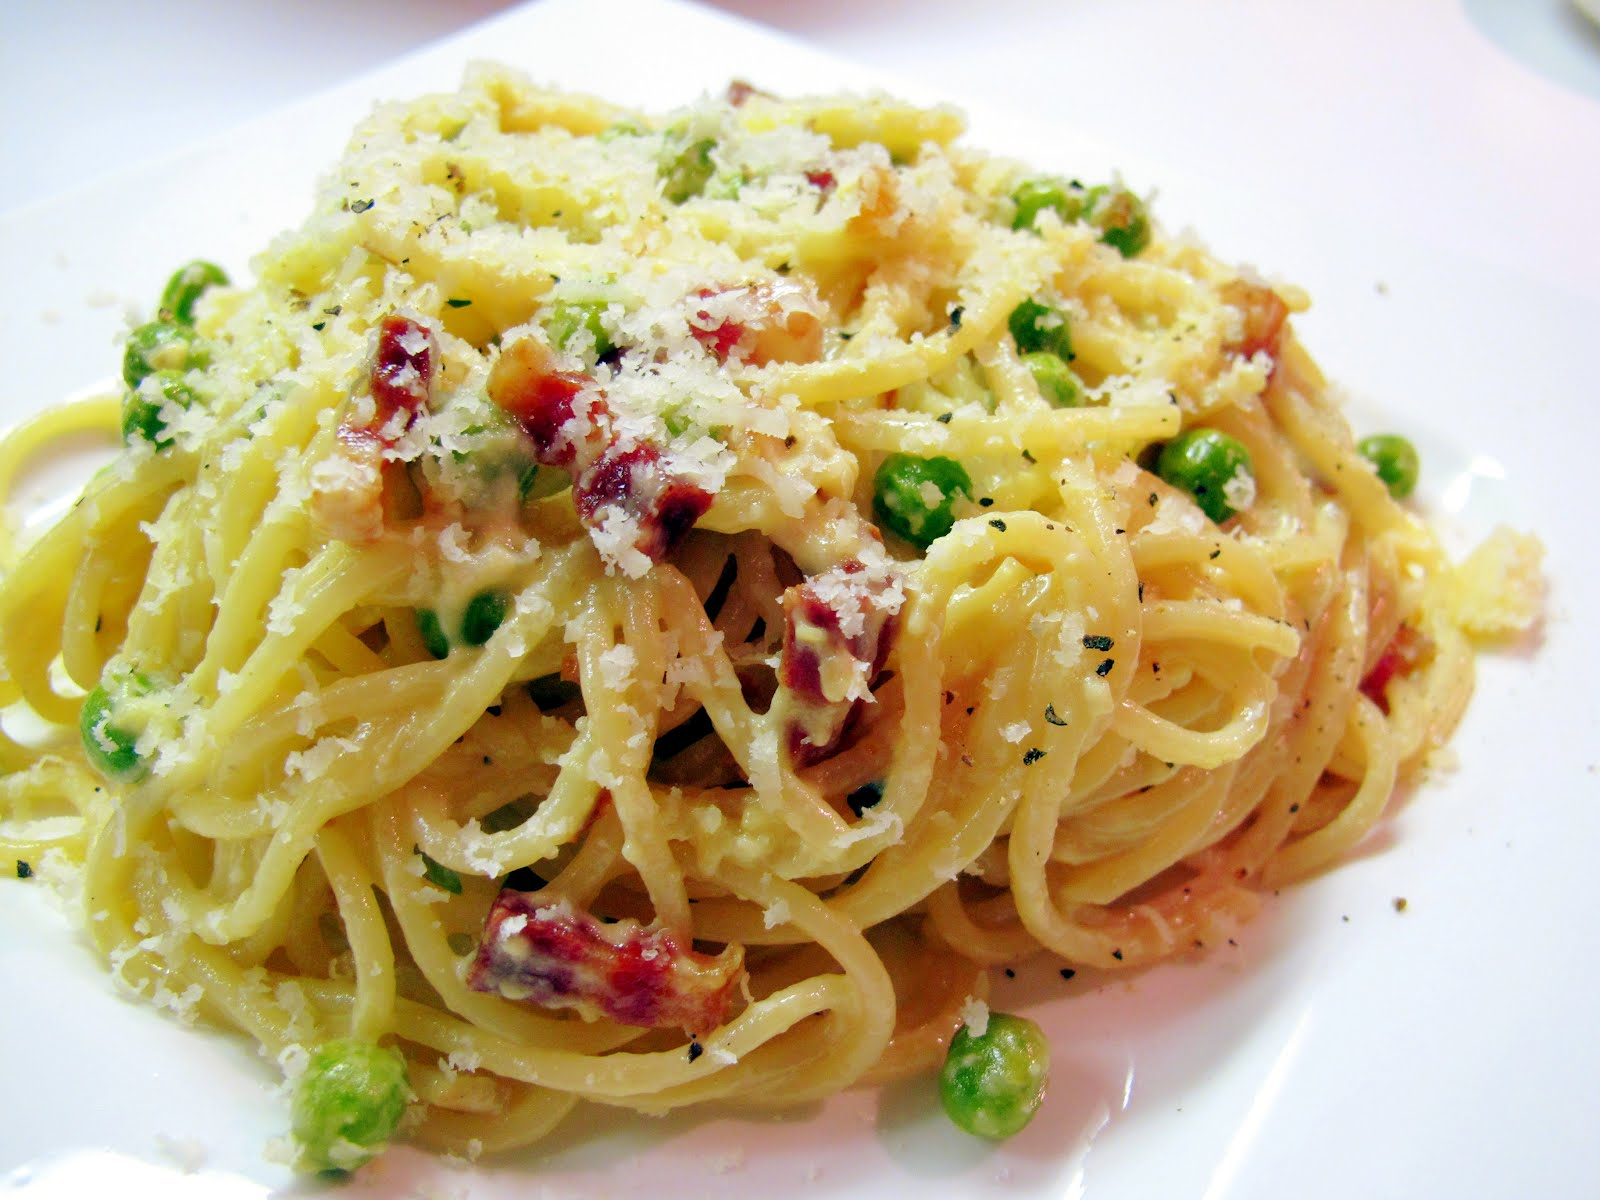 Dragon's Kitchen: Spaghetti Carbonara With Pancetta and Peas